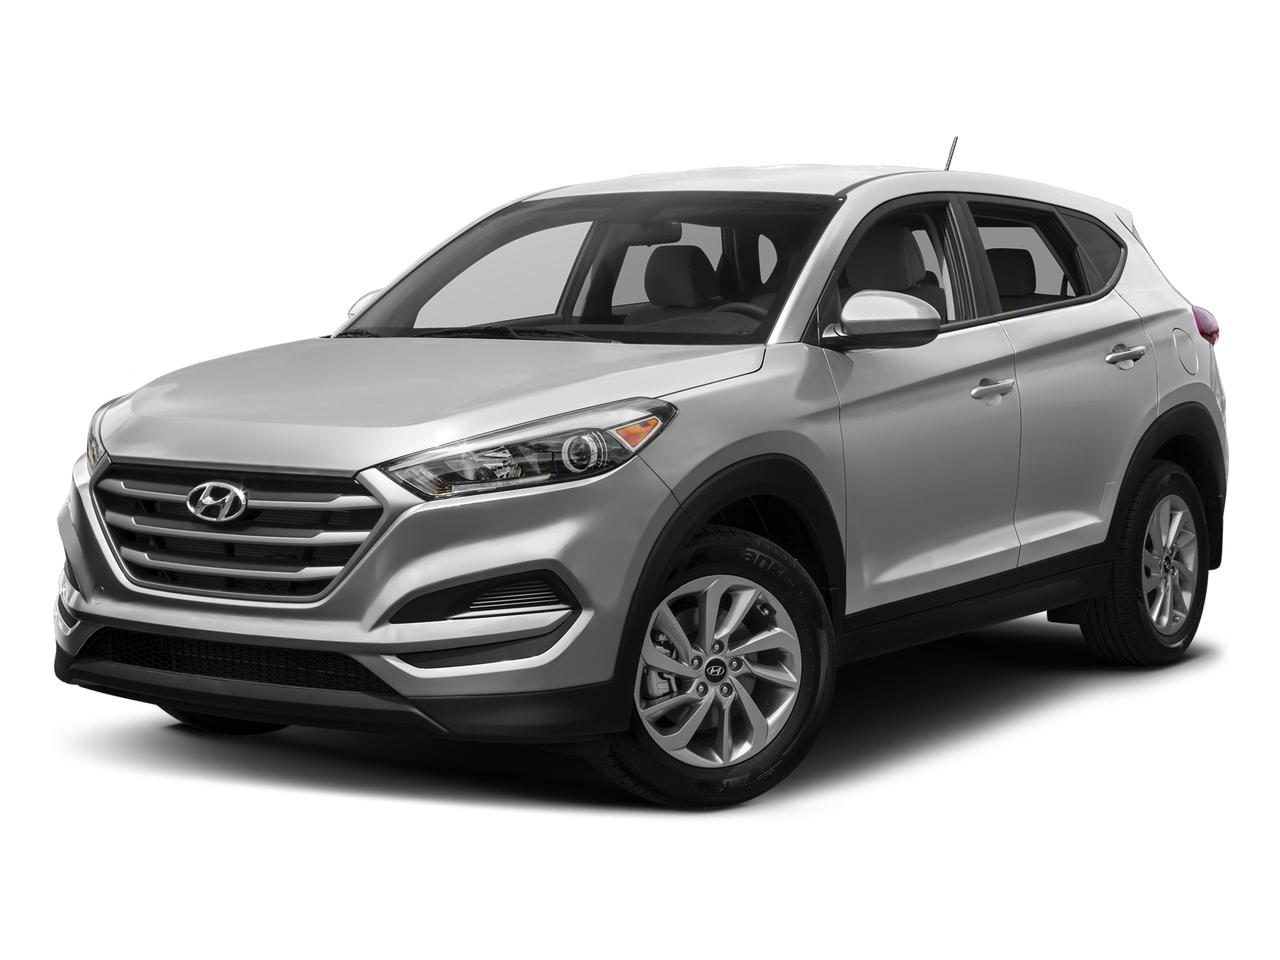 2017 Hyundai Tucson Vehicle Photo in Owensboro, KY 42303